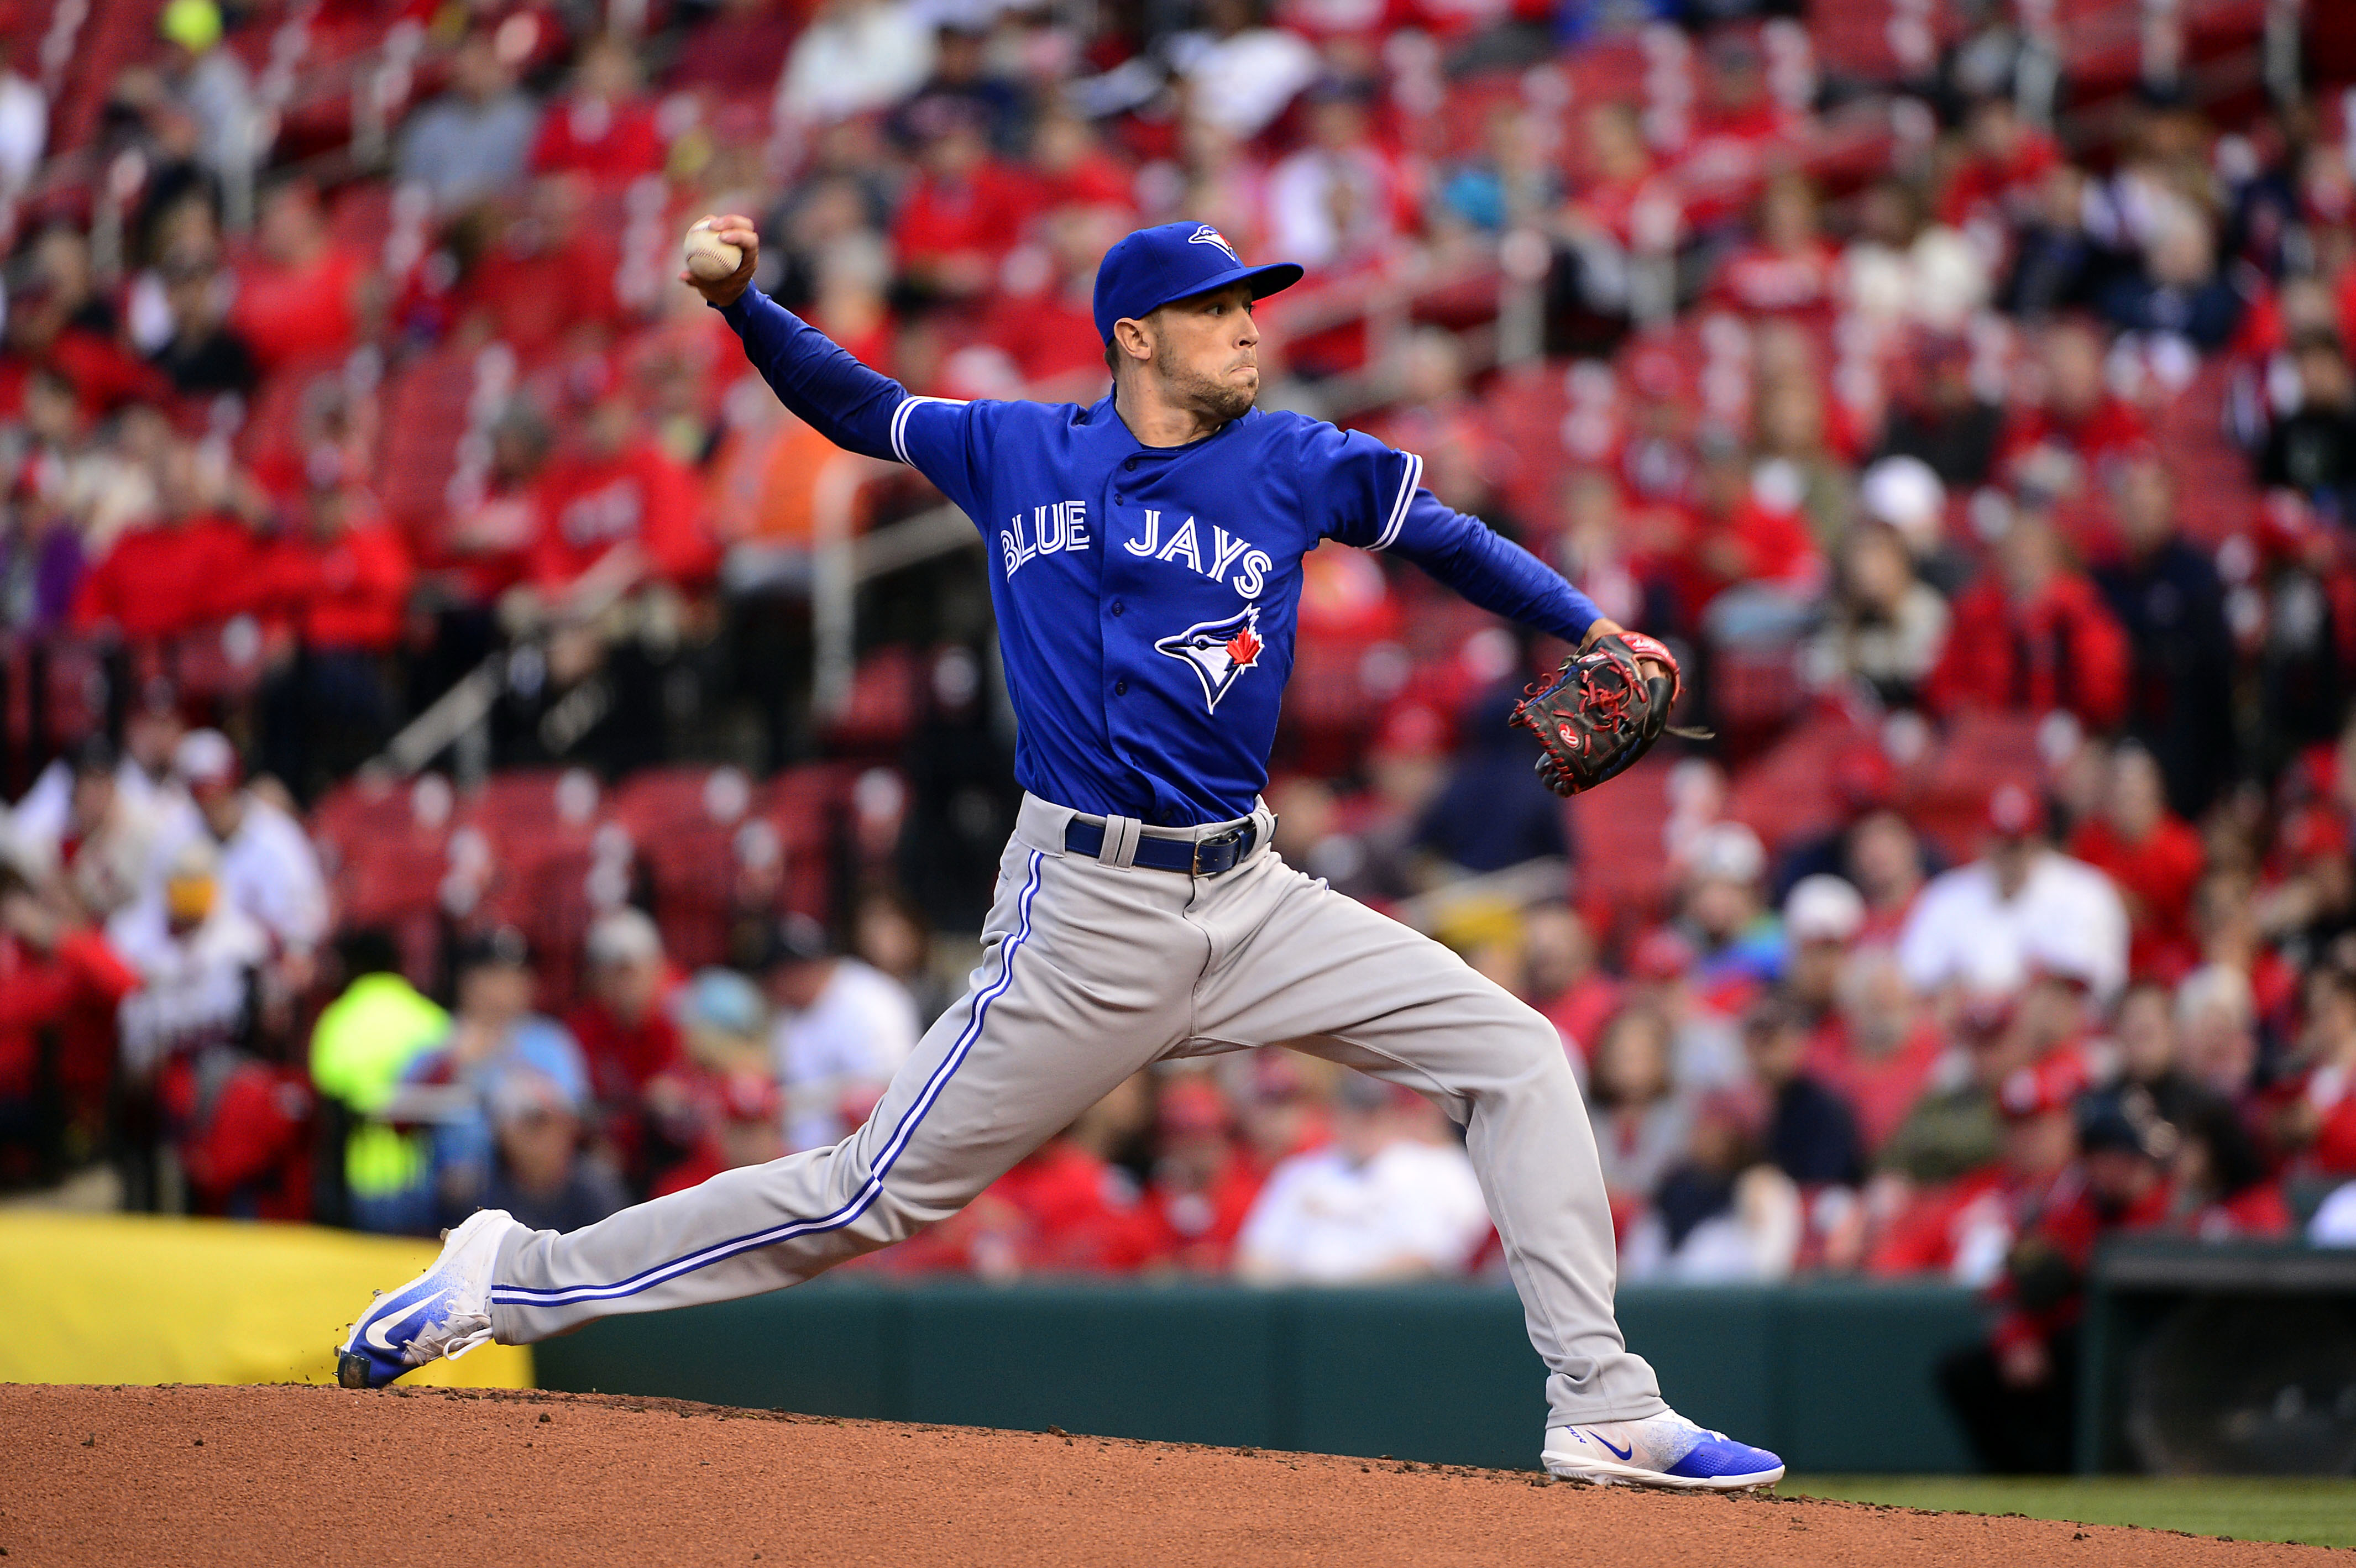 10033392-mlb-game-two-toronto-blue-jays-at-st.-louis-cardinals